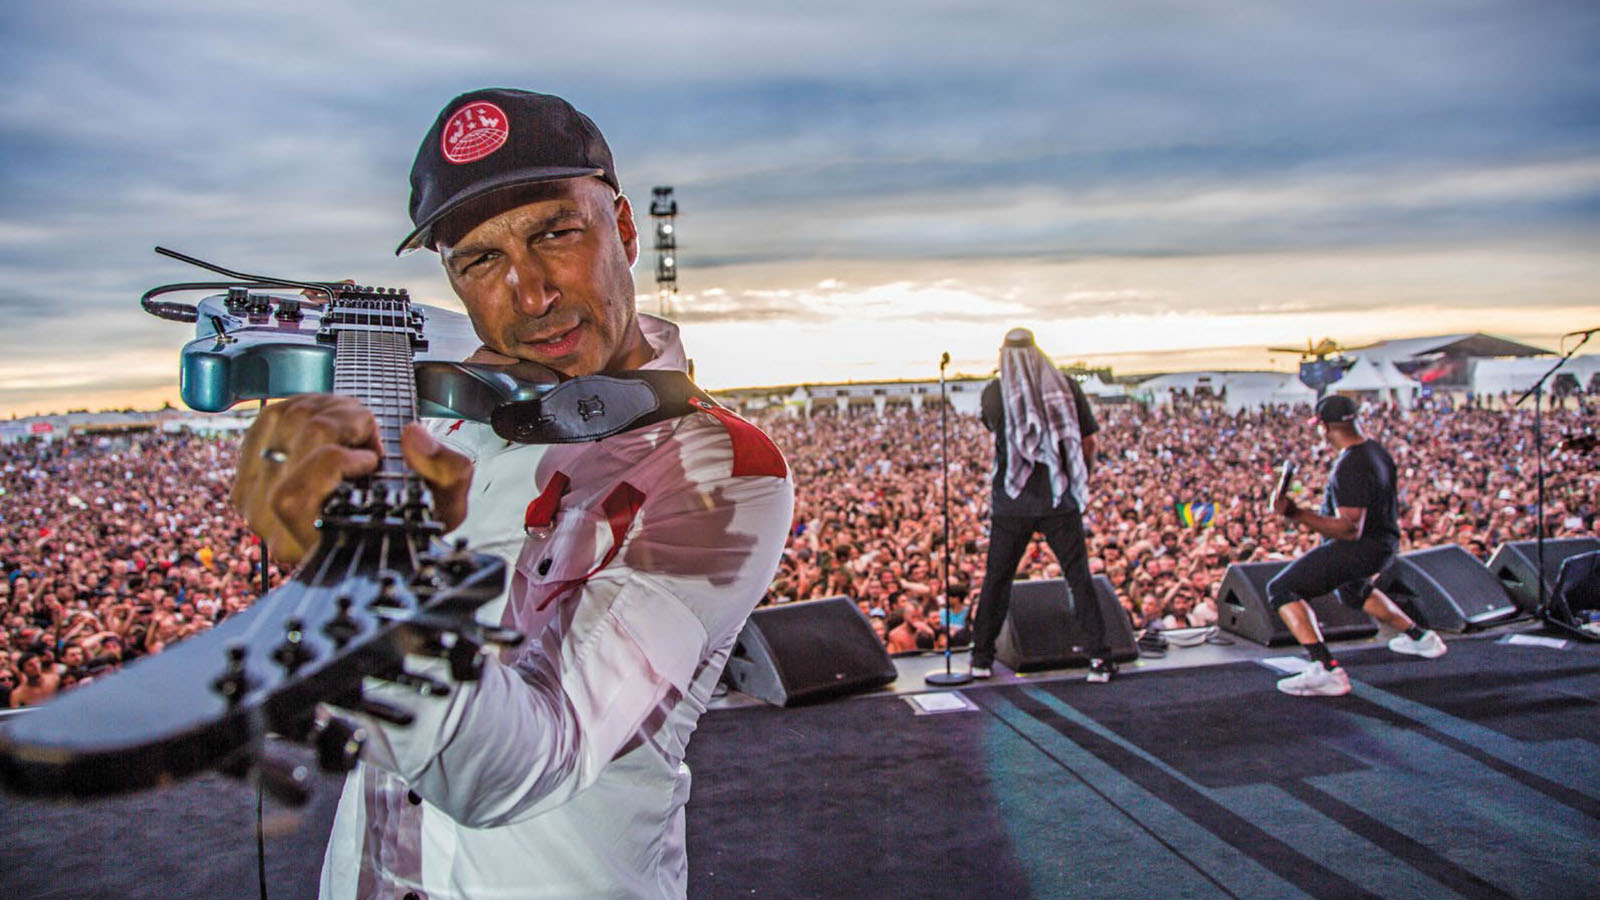 """Tom Morello: """"I wanted one foot planted on a Marshall stack and another in the world of 2019 sonics"""" 